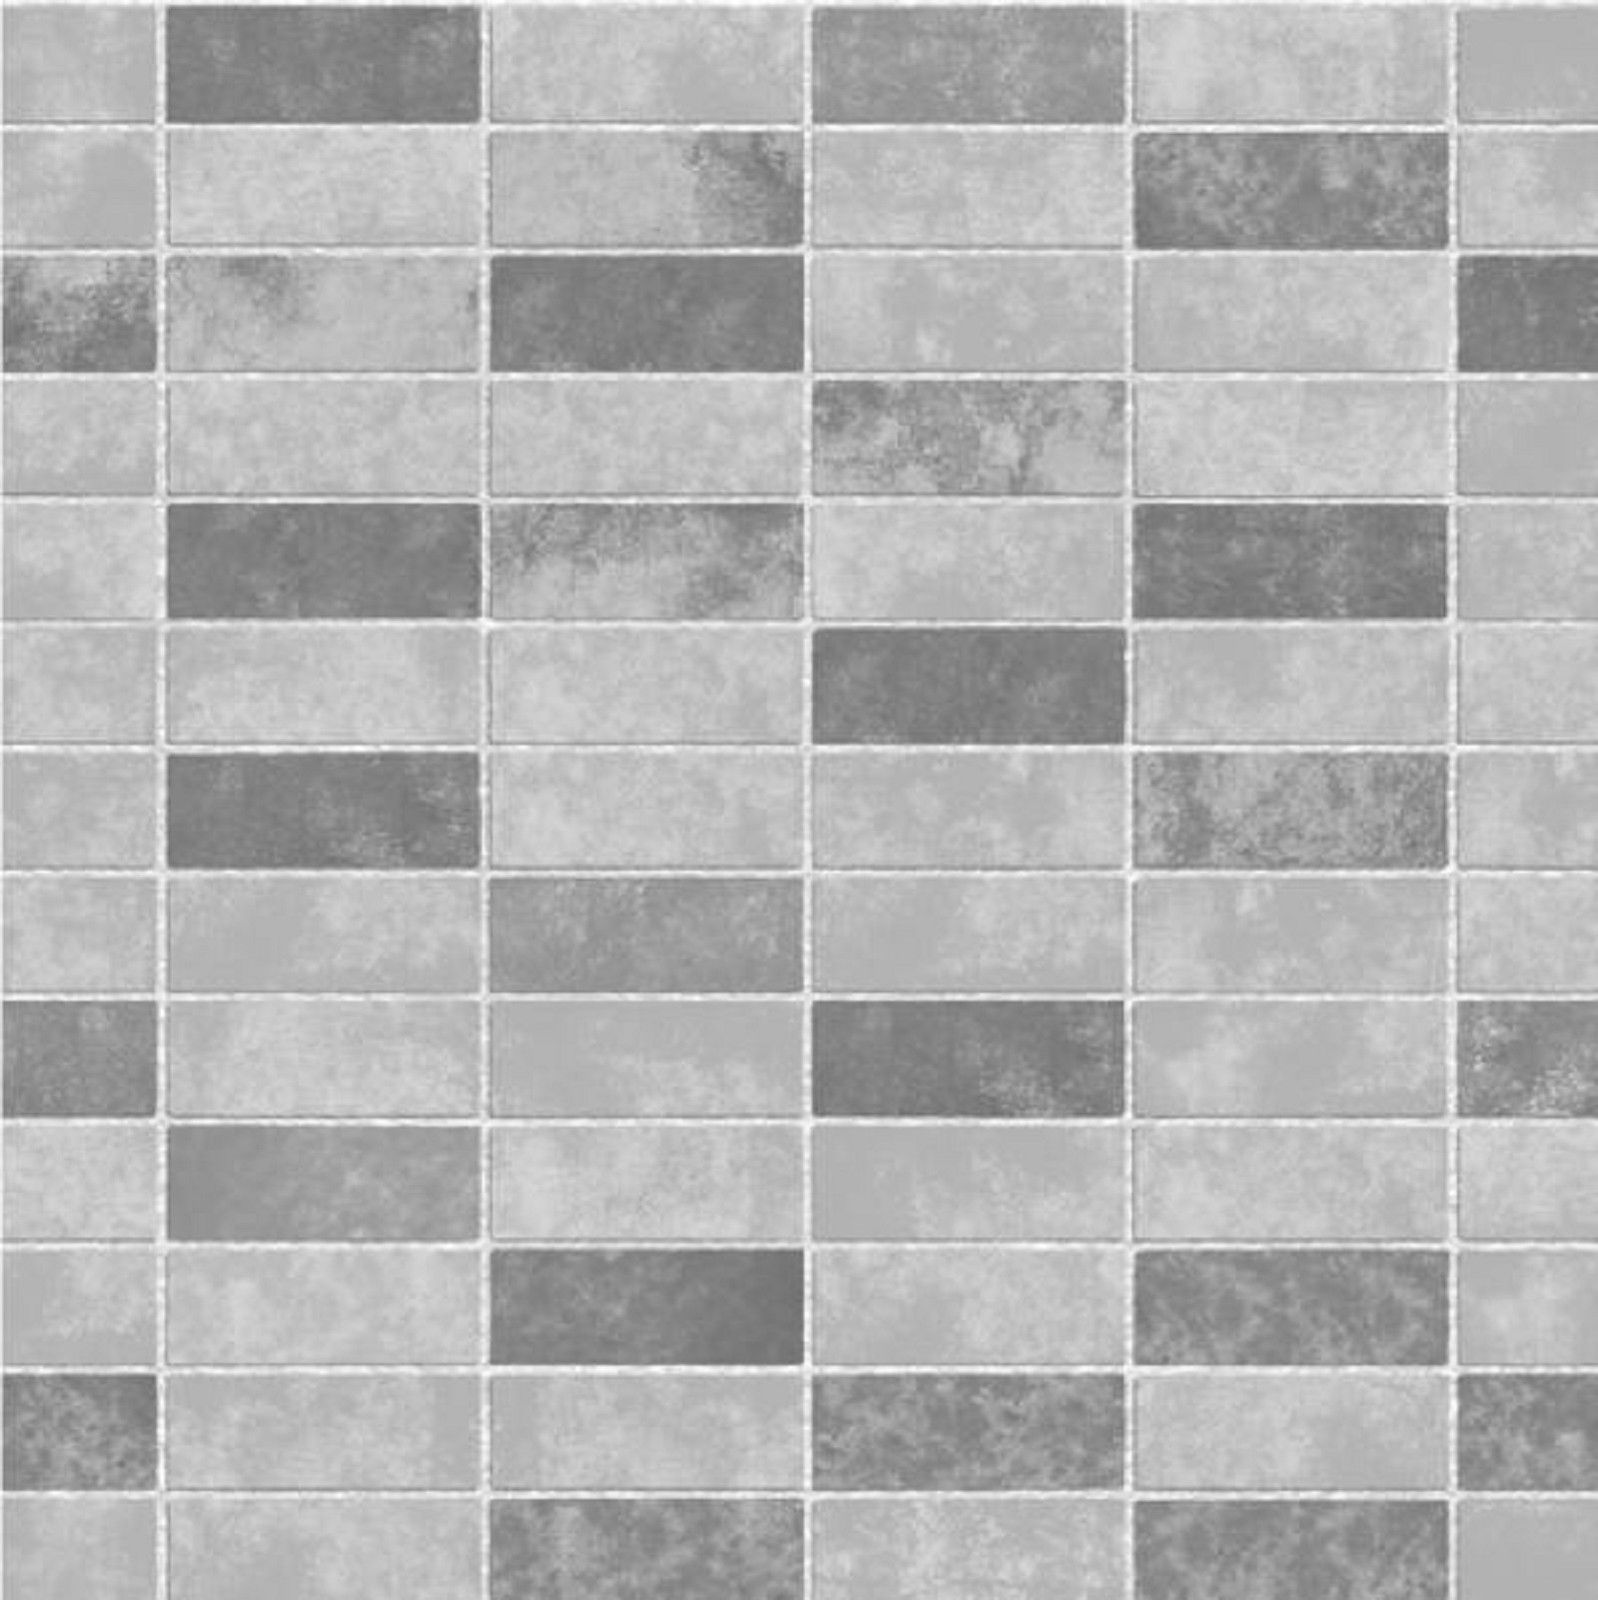 Fine decor ceramica grey kitchen bathroom wallpaper for Gray bathroom wallpaper